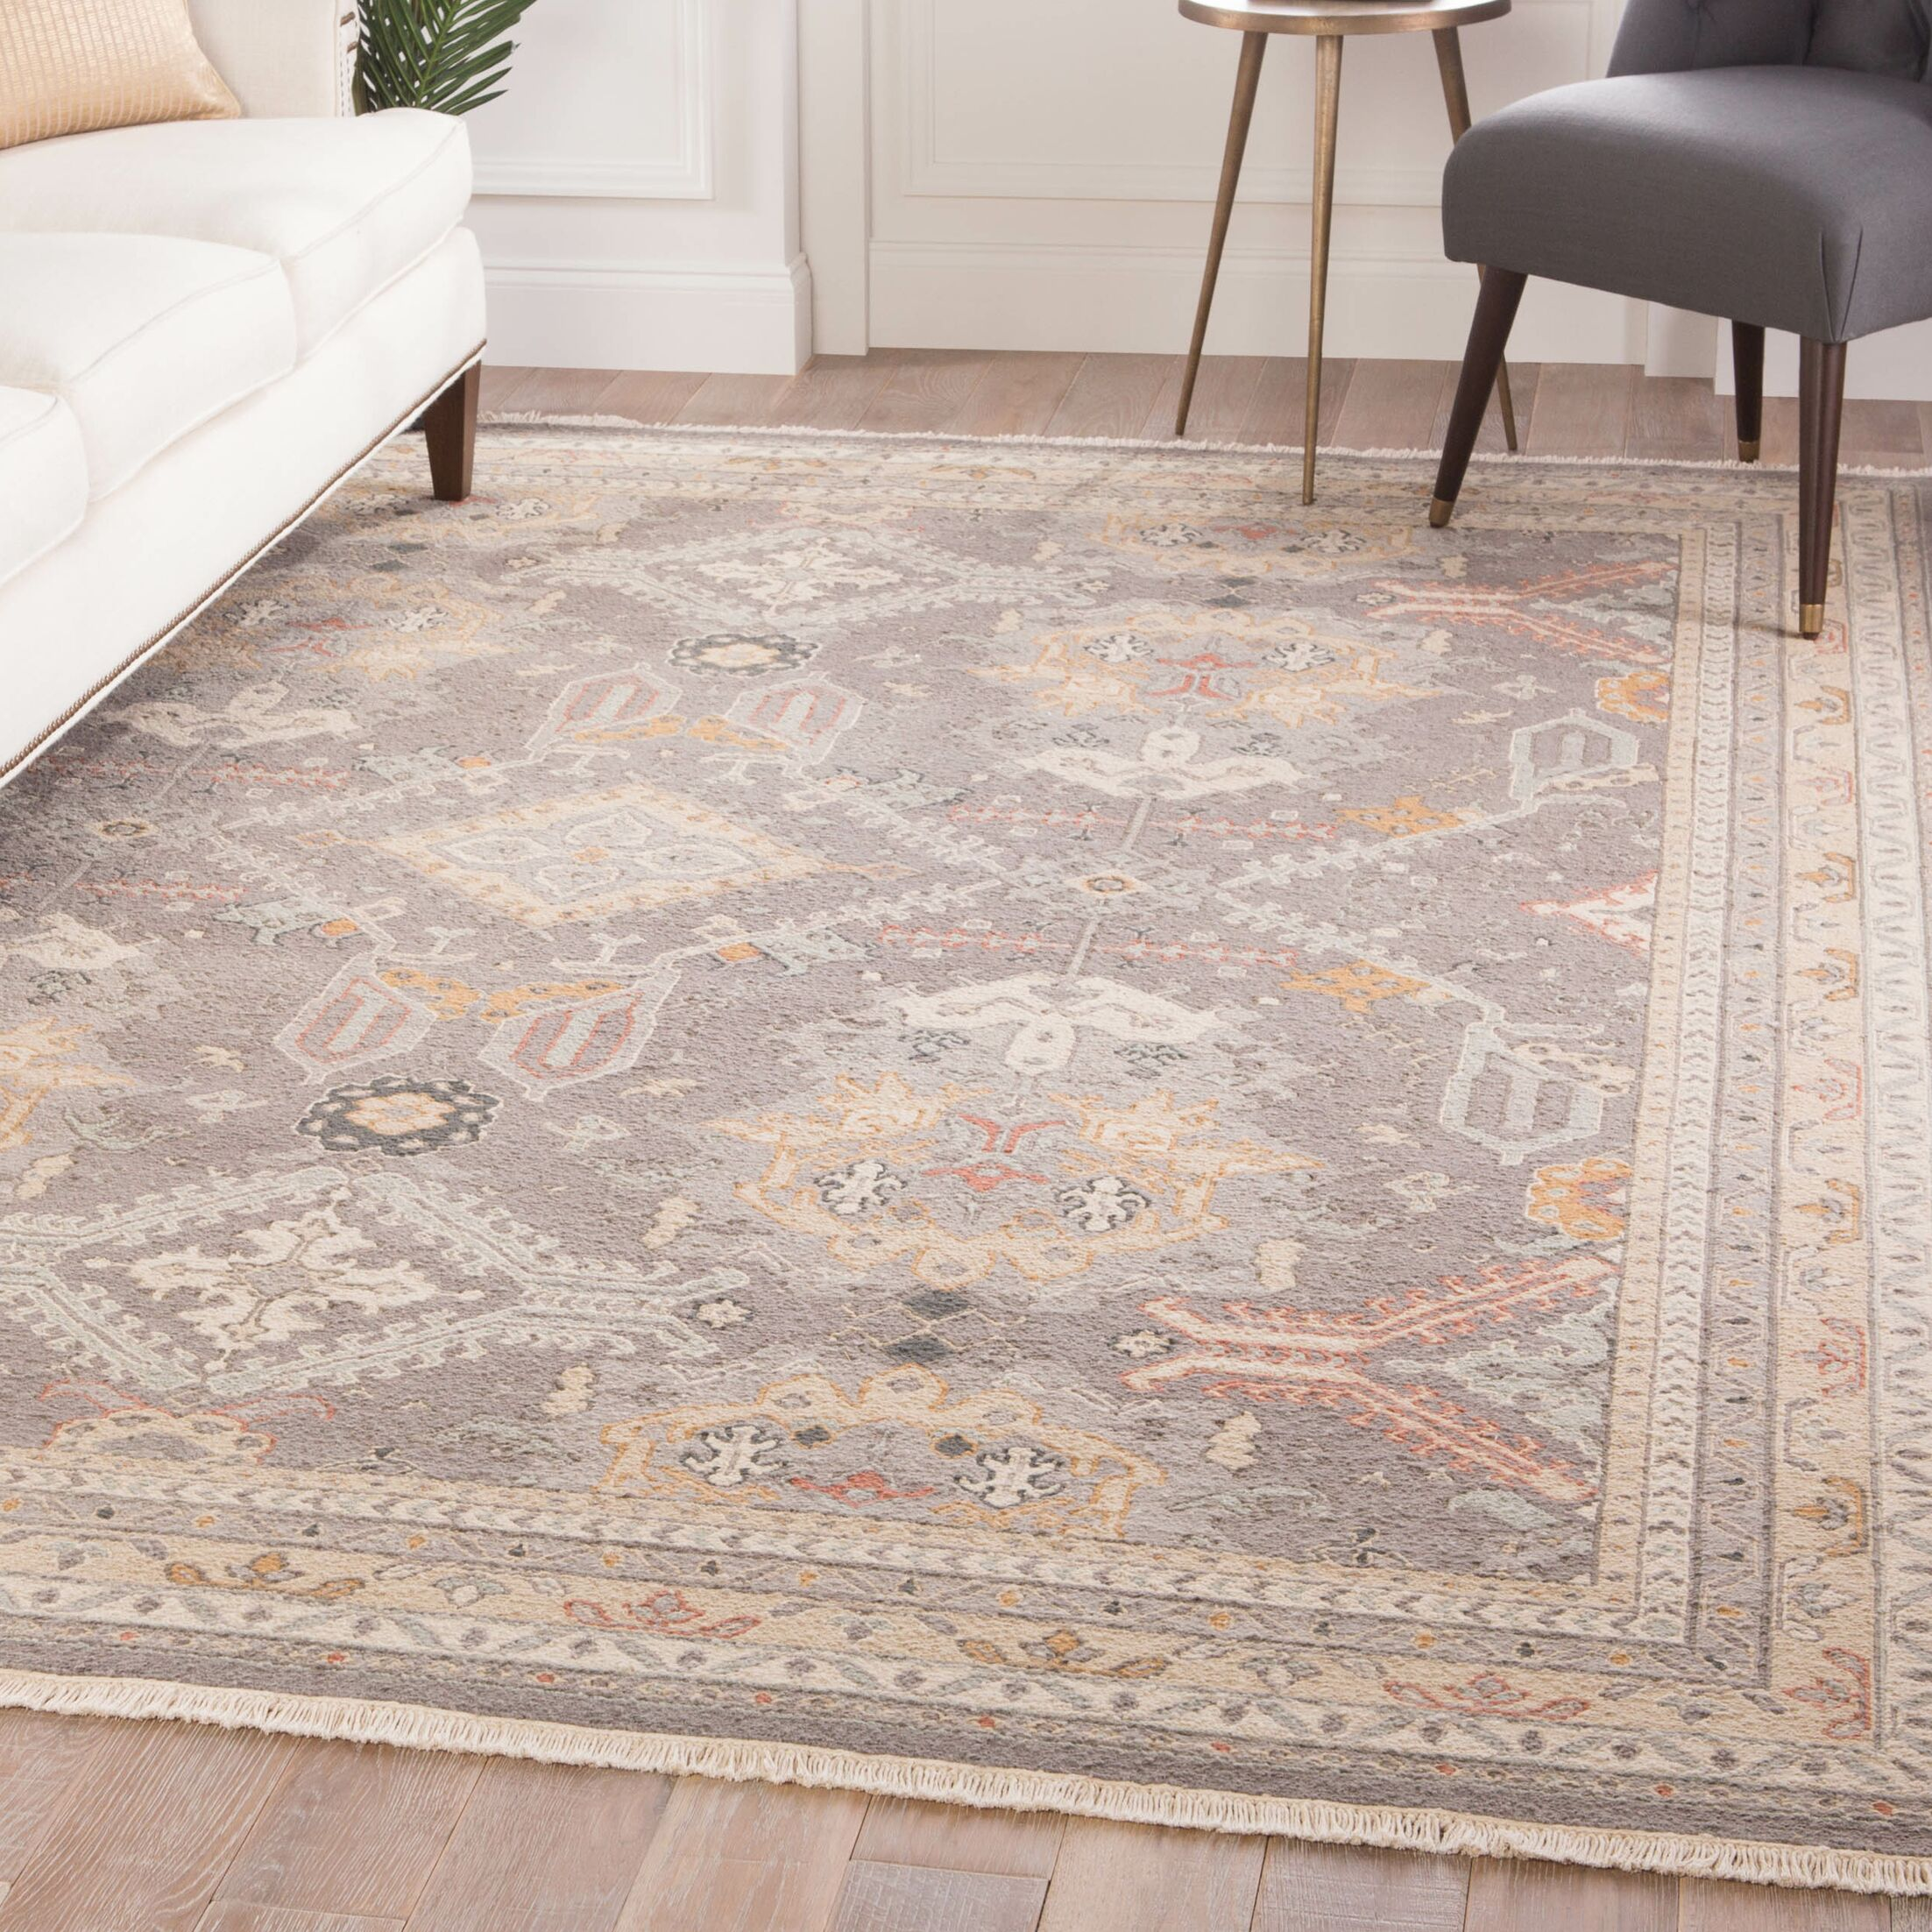 Lake Macquarie Medallion Hand-Knotted Wool Gray Area Rug Rug Size: Rectangle 6' x 9'